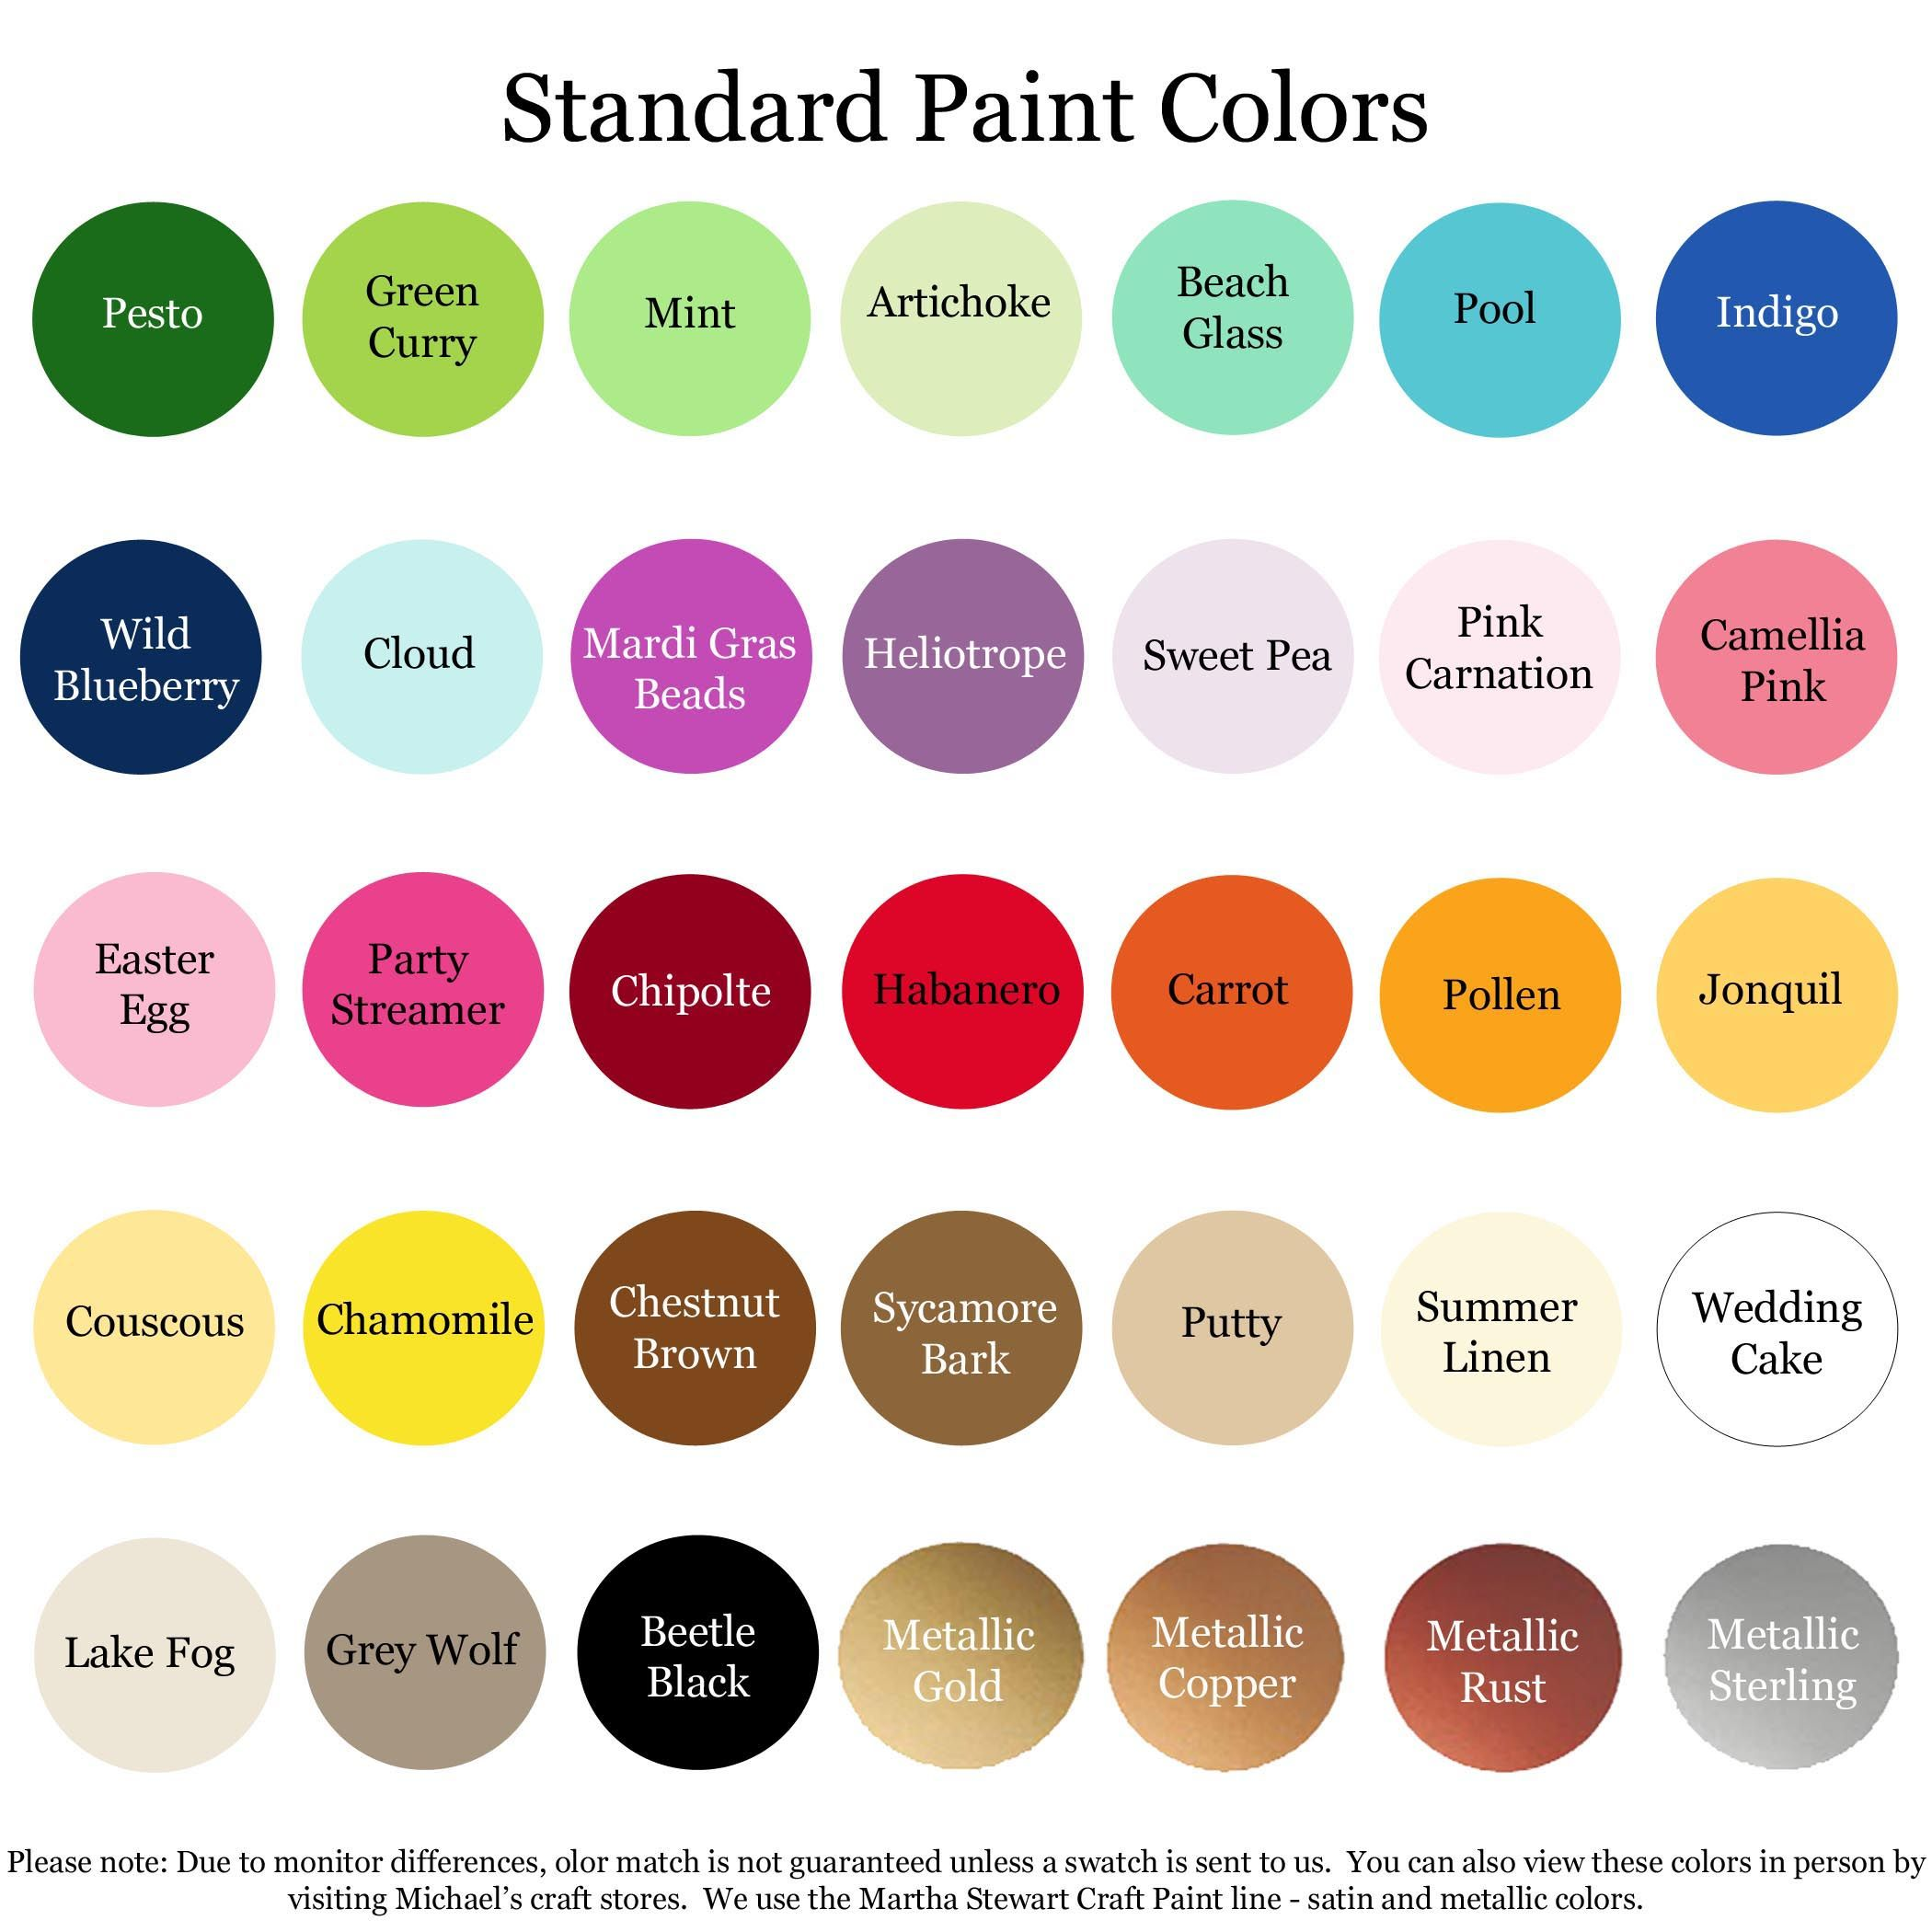 Here Are My Standard Paint Color Offerings If You Would Like To See